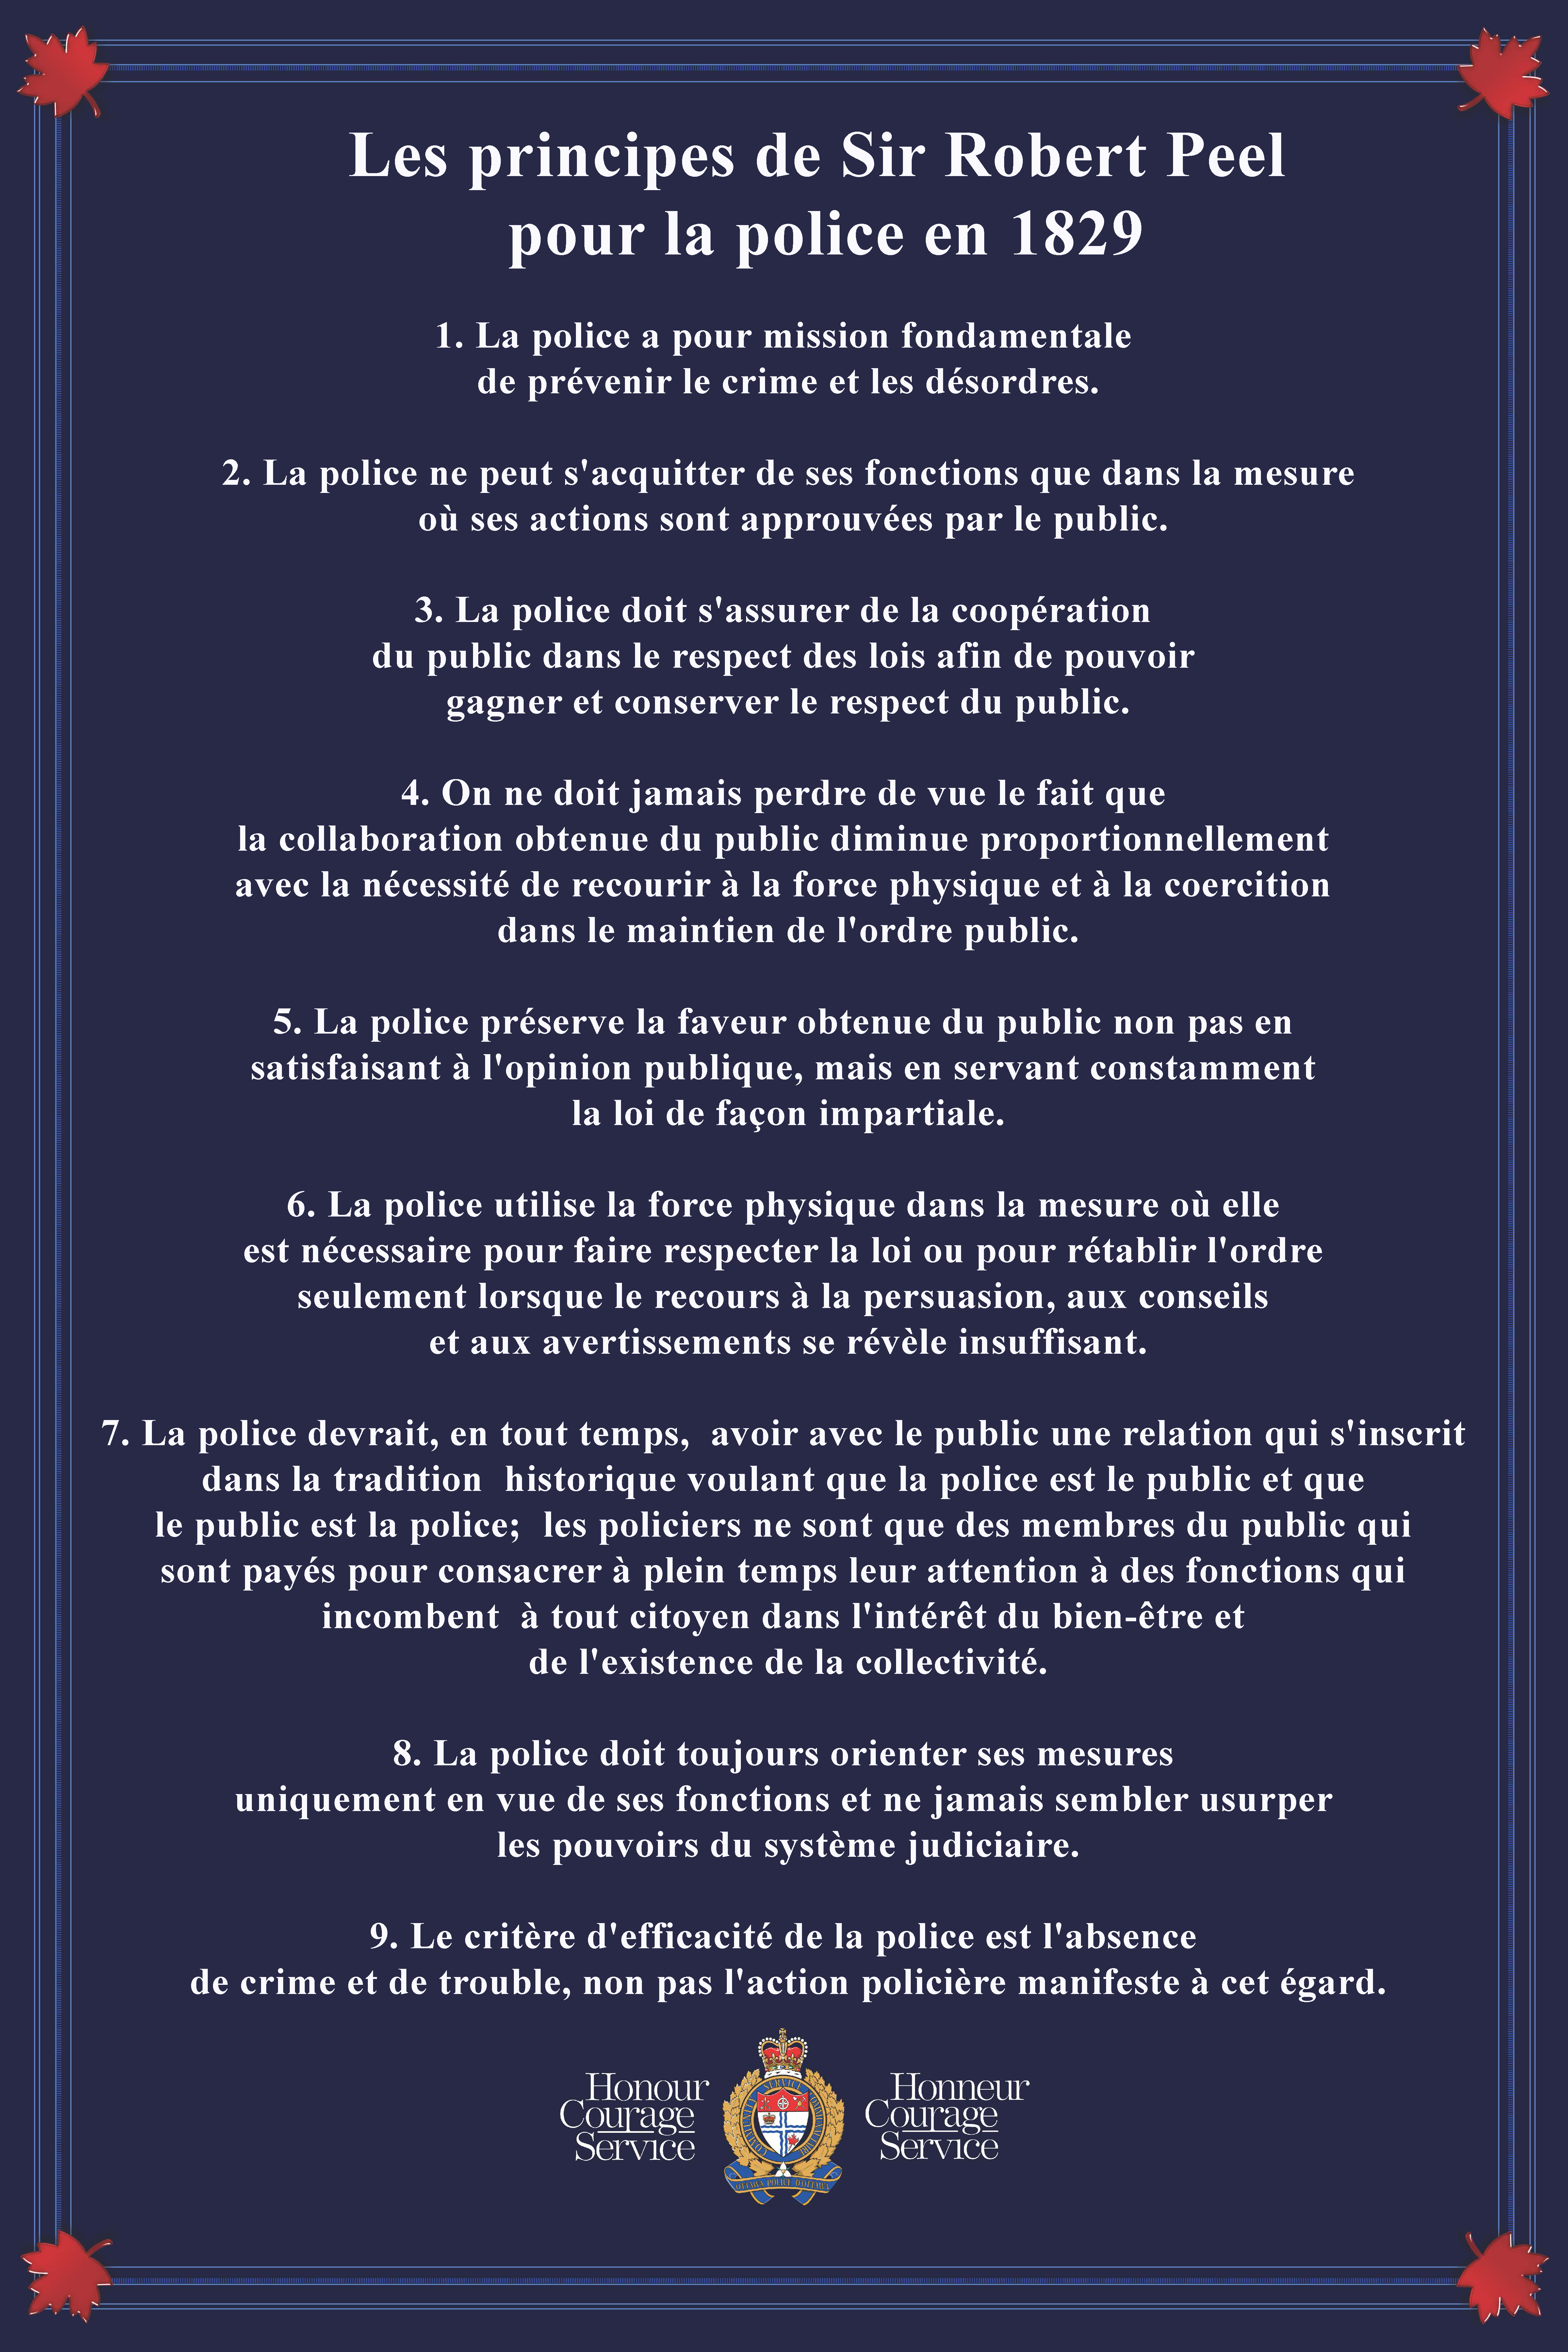 Les principles de Sir Robert Peel